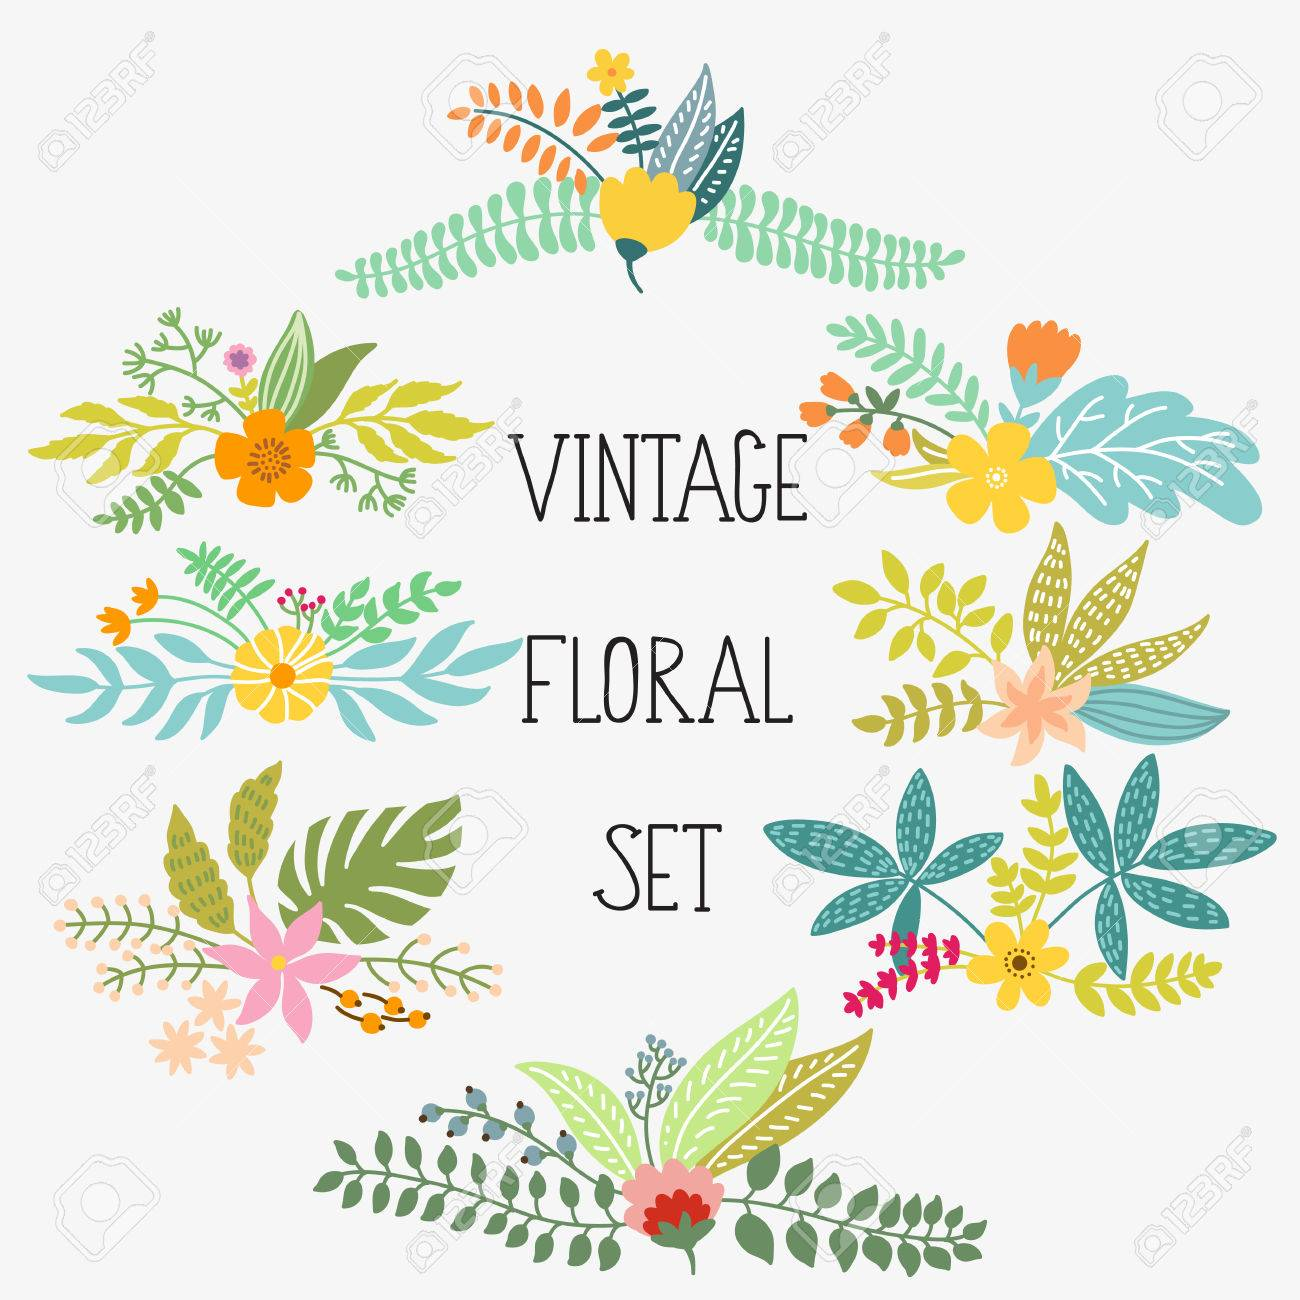 Vector set with vintage flowers - 54755346